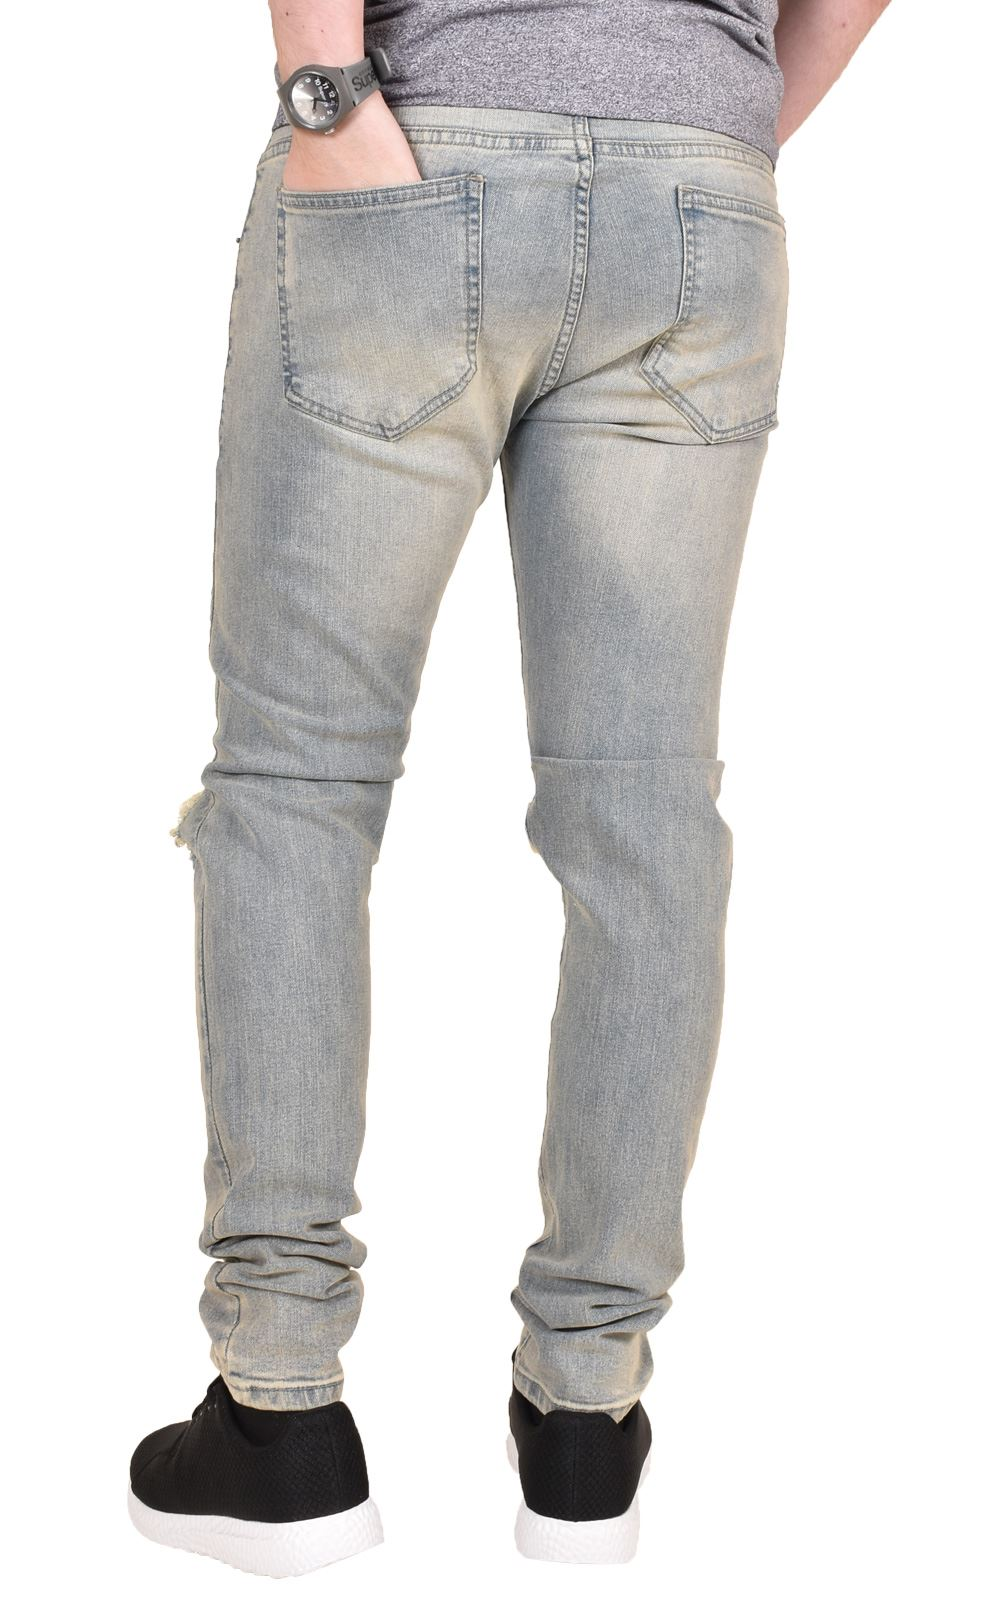 Mens-Ripped-Jeans-Skinny-Slim-Fit-Stretch-Distressed-Denim-Pants-Trousers-28-40 thumbnail 10